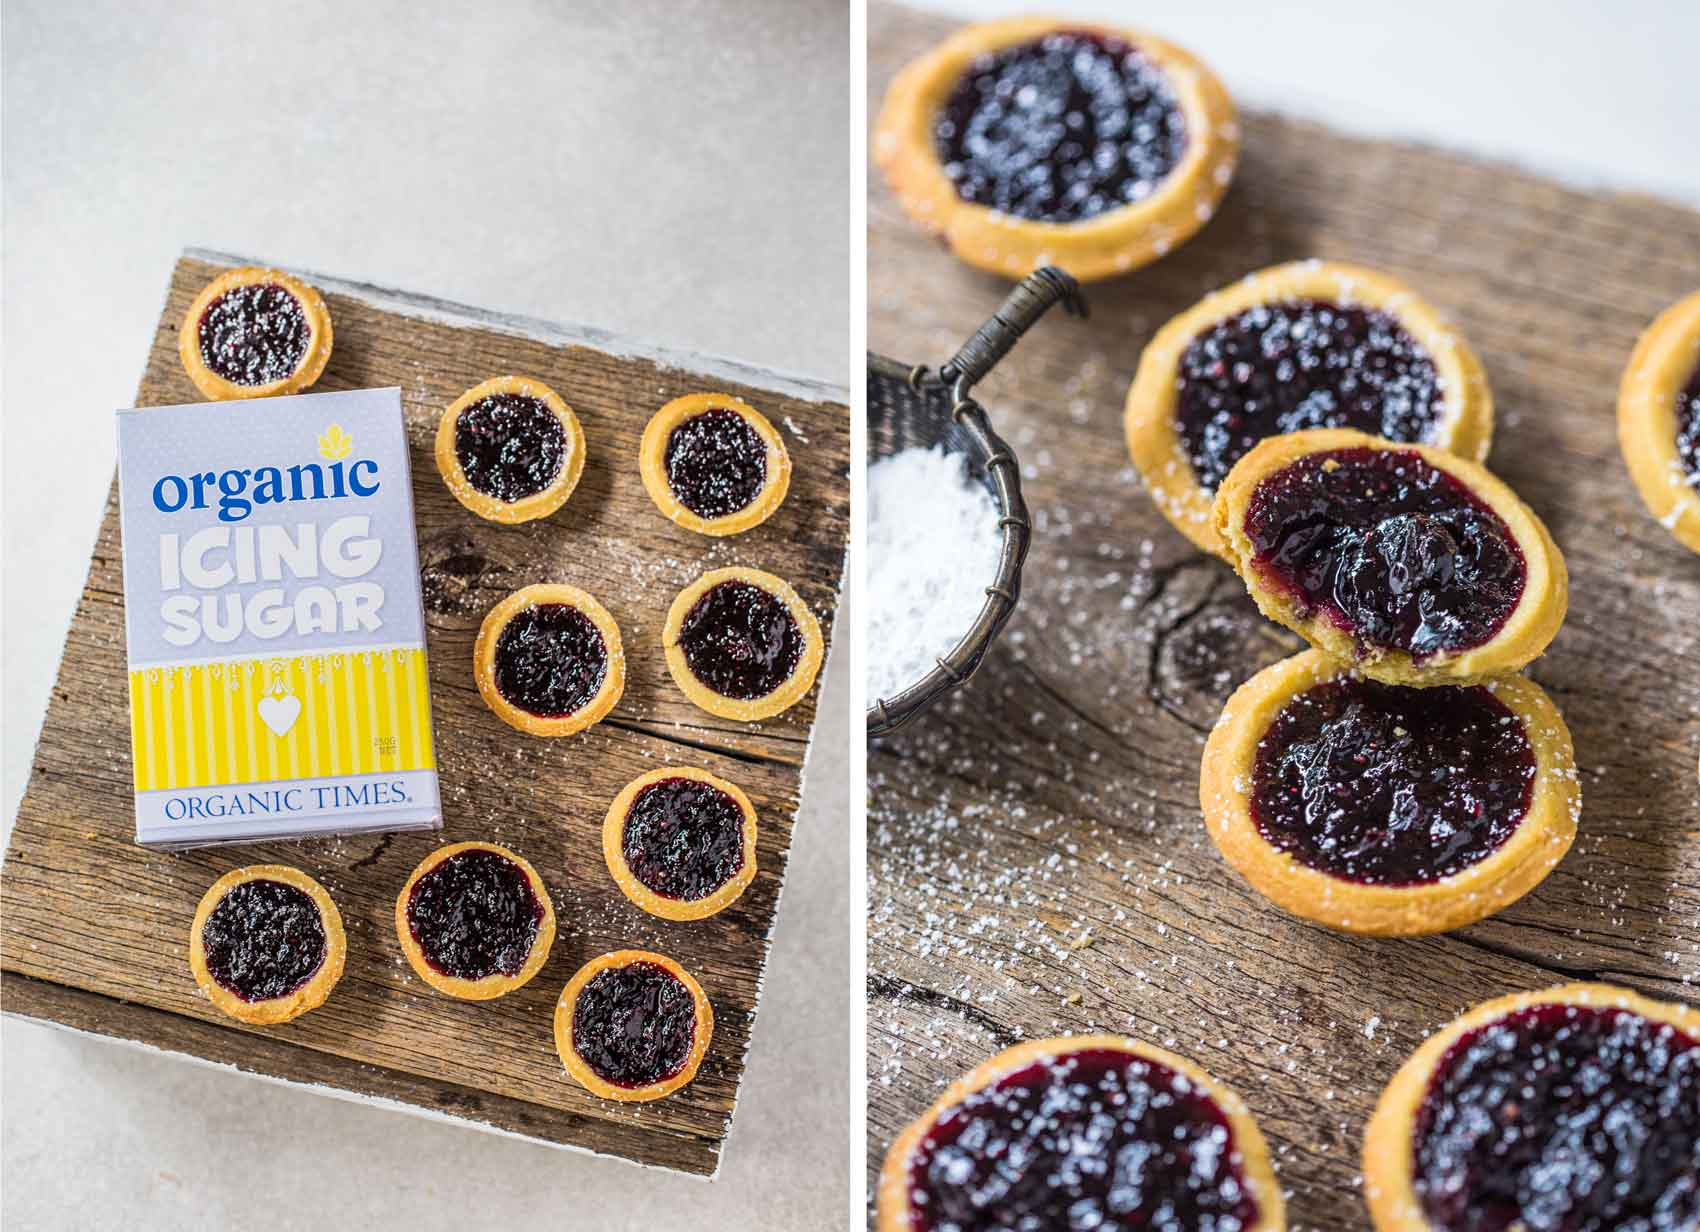 A box of Organic Times Icing Sugar next to Berry Jam Tarts on a wooden serving board